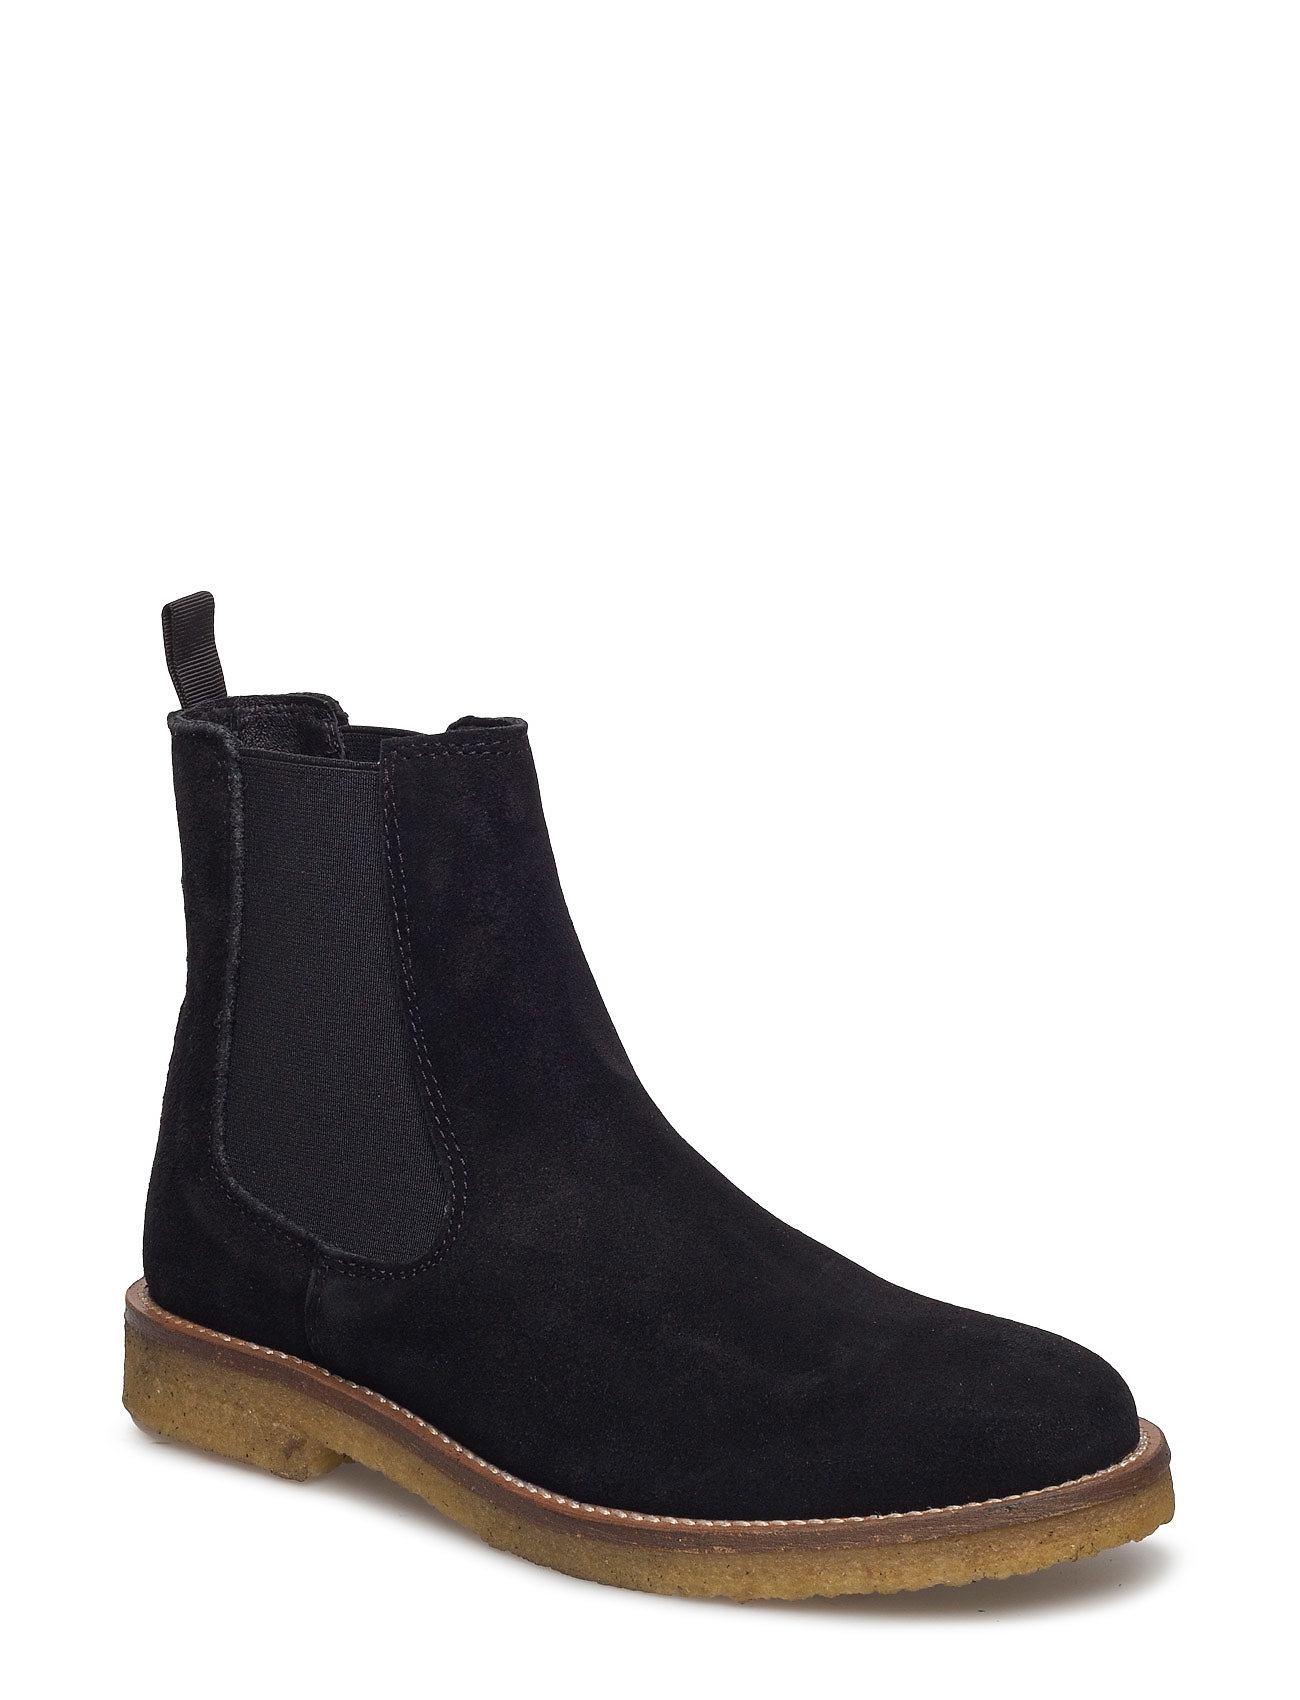 garment project Chelsea boot fra boozt.com dk